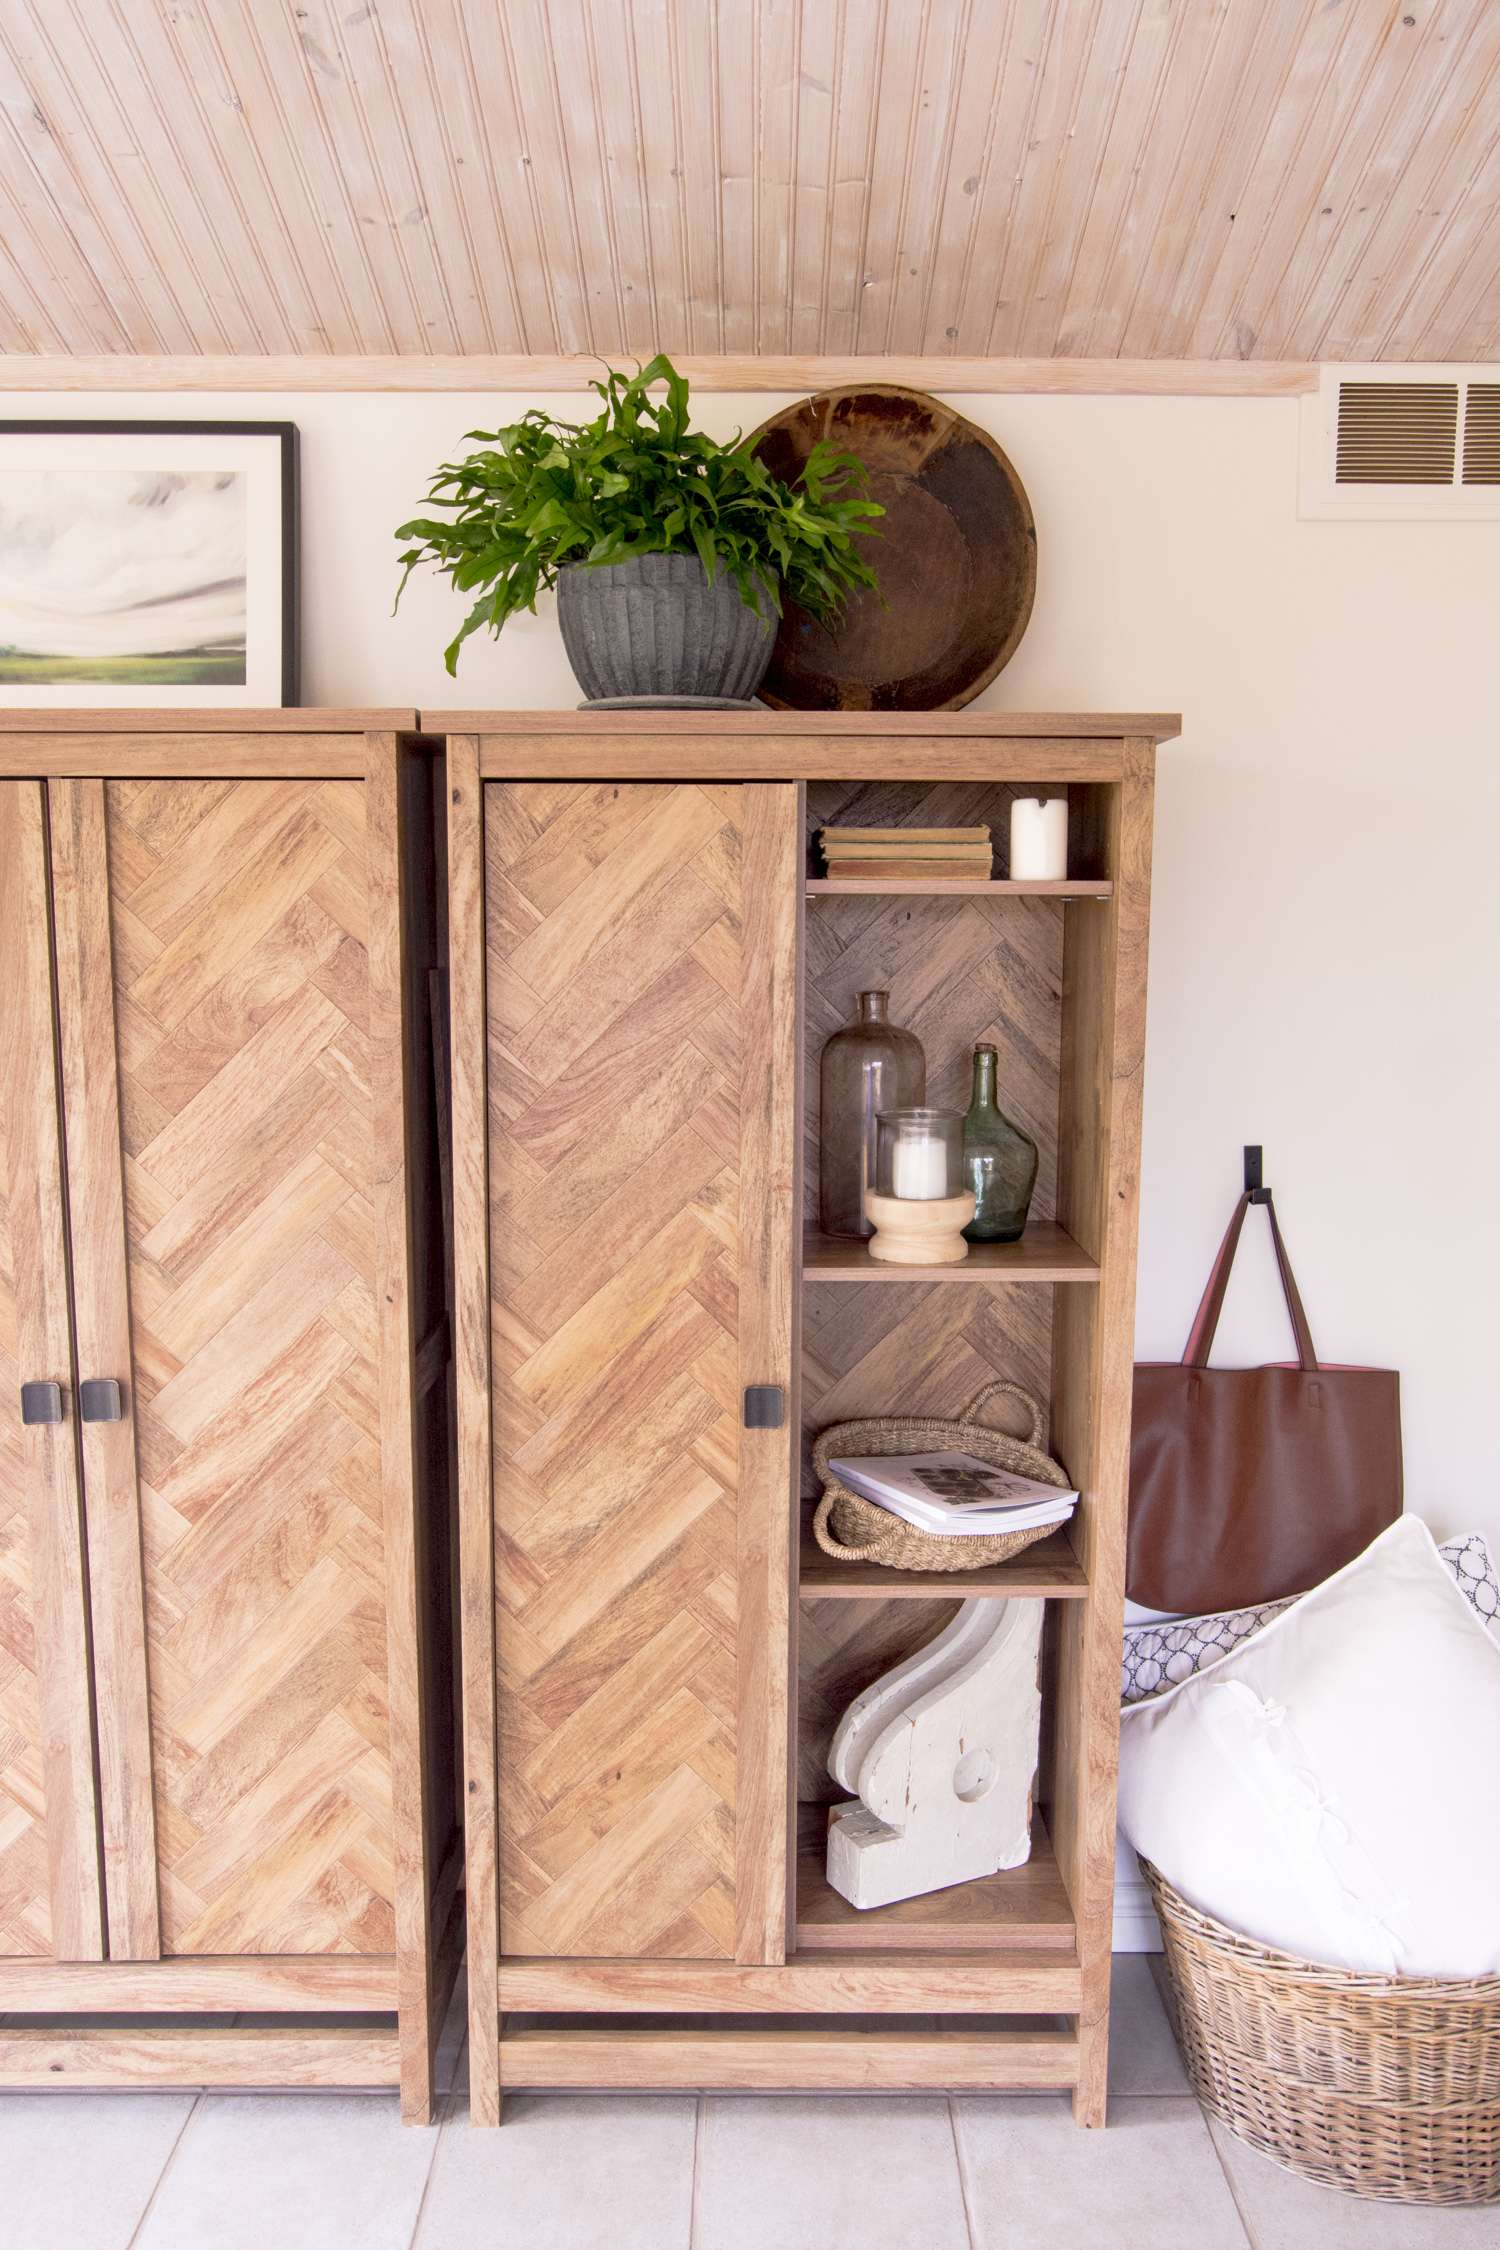 Office cabinets decorated with the modern farmhouse style.